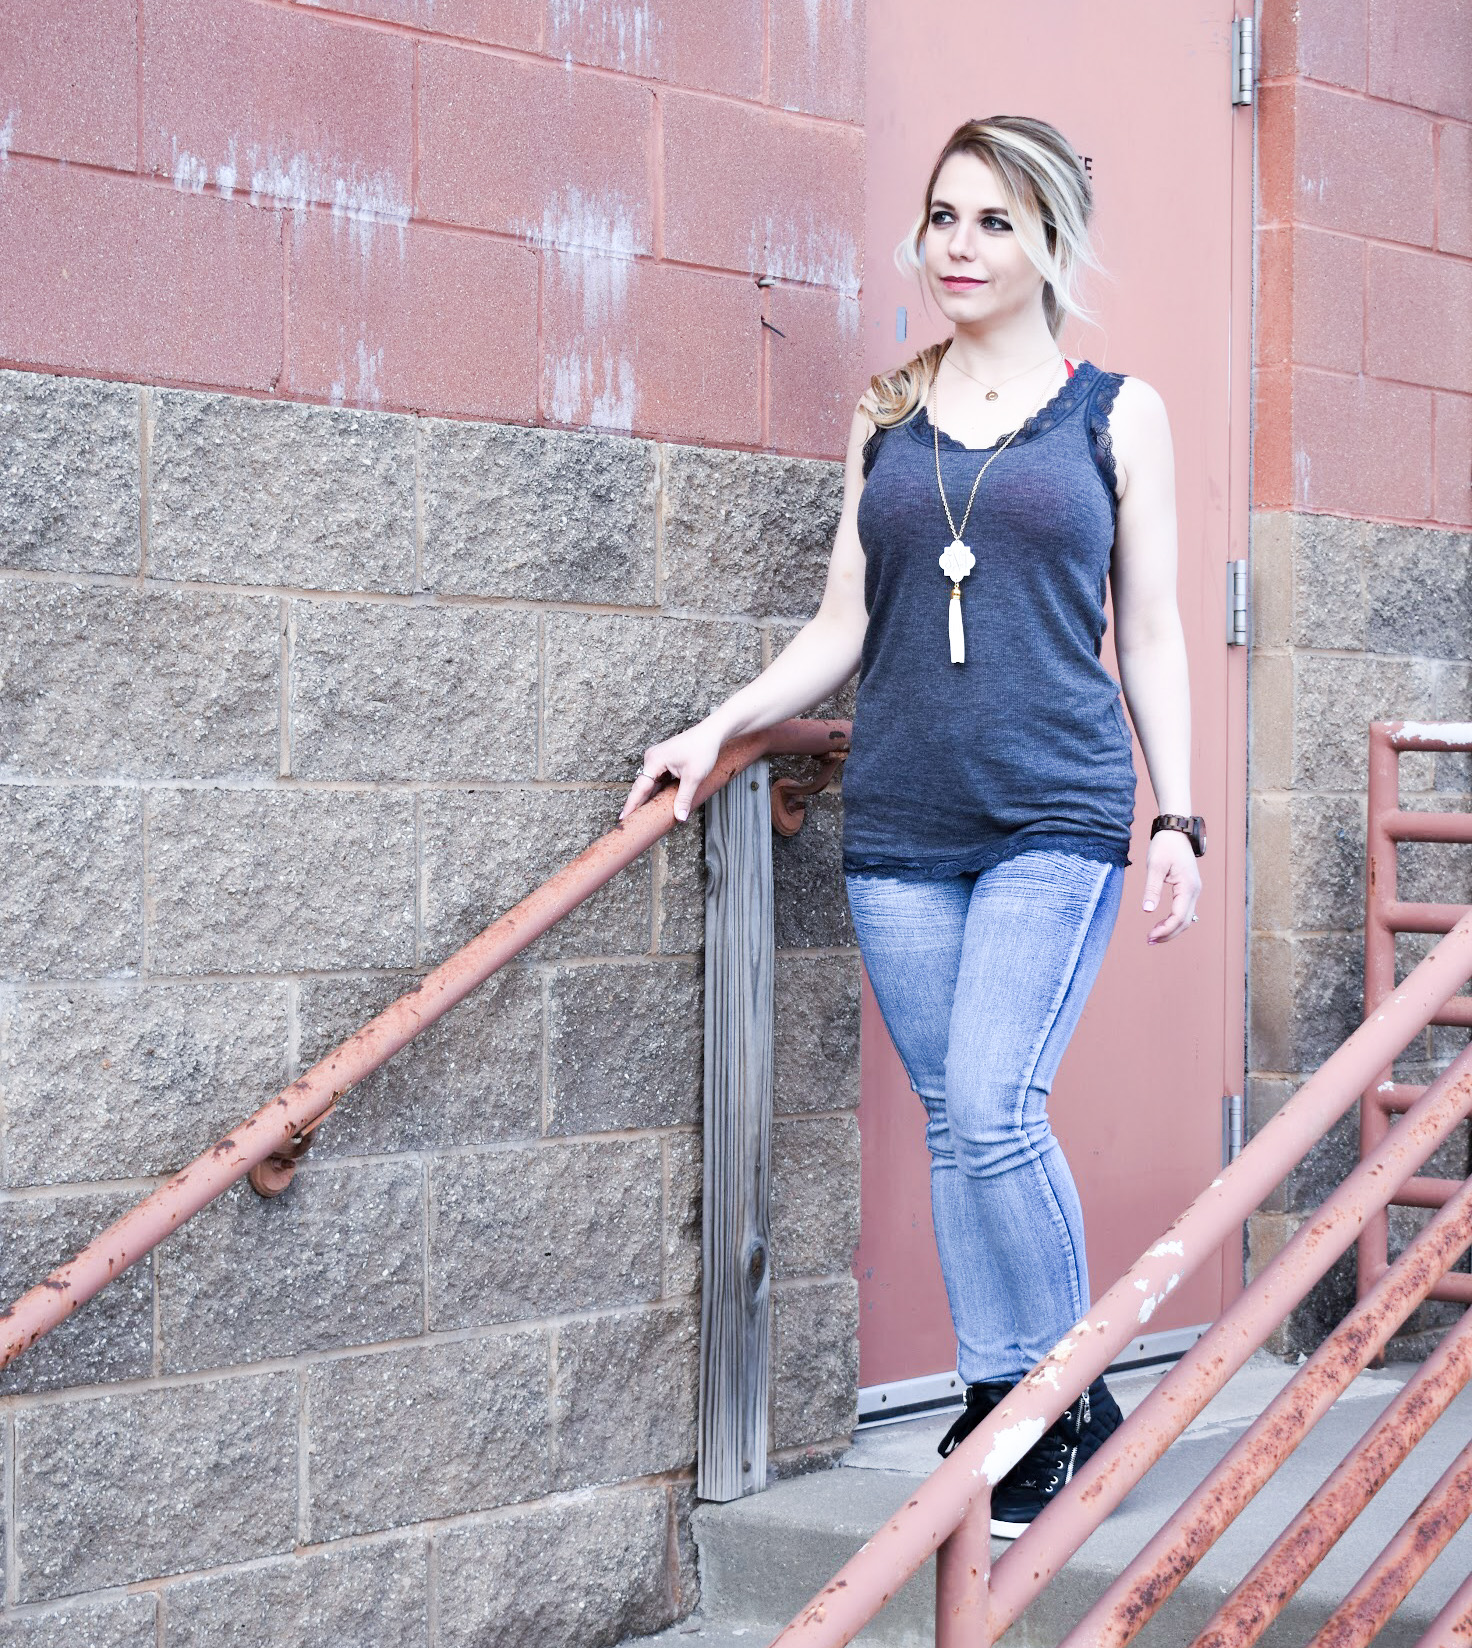 What to Wear Under a Lace Back Top: Lace back tops, open back tops, and sheer blouses present unique wardrobe challenges. Here's how fashion blogger COVET by tricia styled a lace back tank top with skinny jeans and wedge sneakers for a fun warm weather look! Sometimes, the best way to work the lace back is to simply embrace the exposed bra look with a fun bra or bralette!